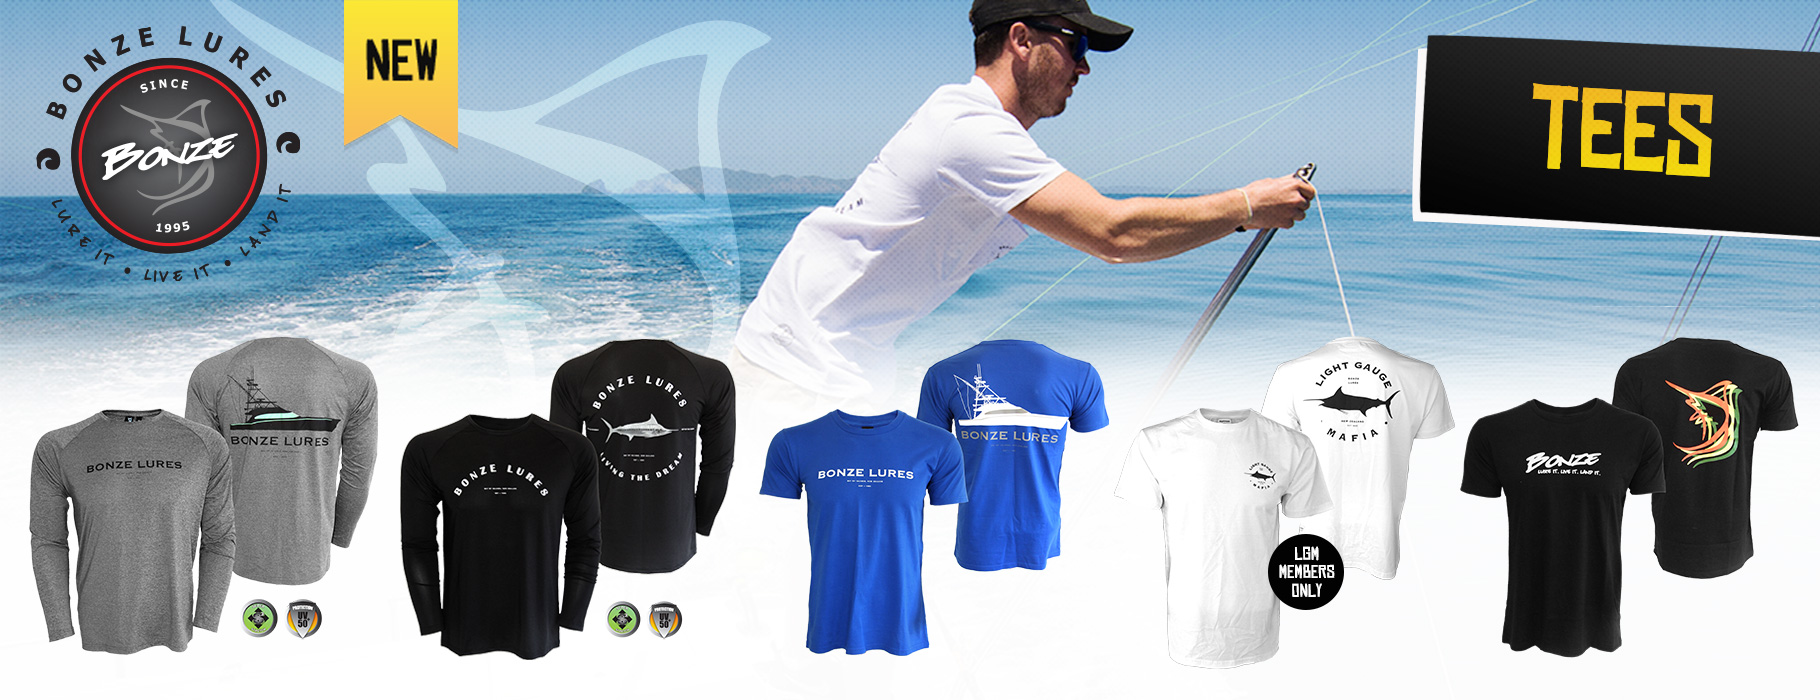 Bonze_Lures_Clothing - Tees